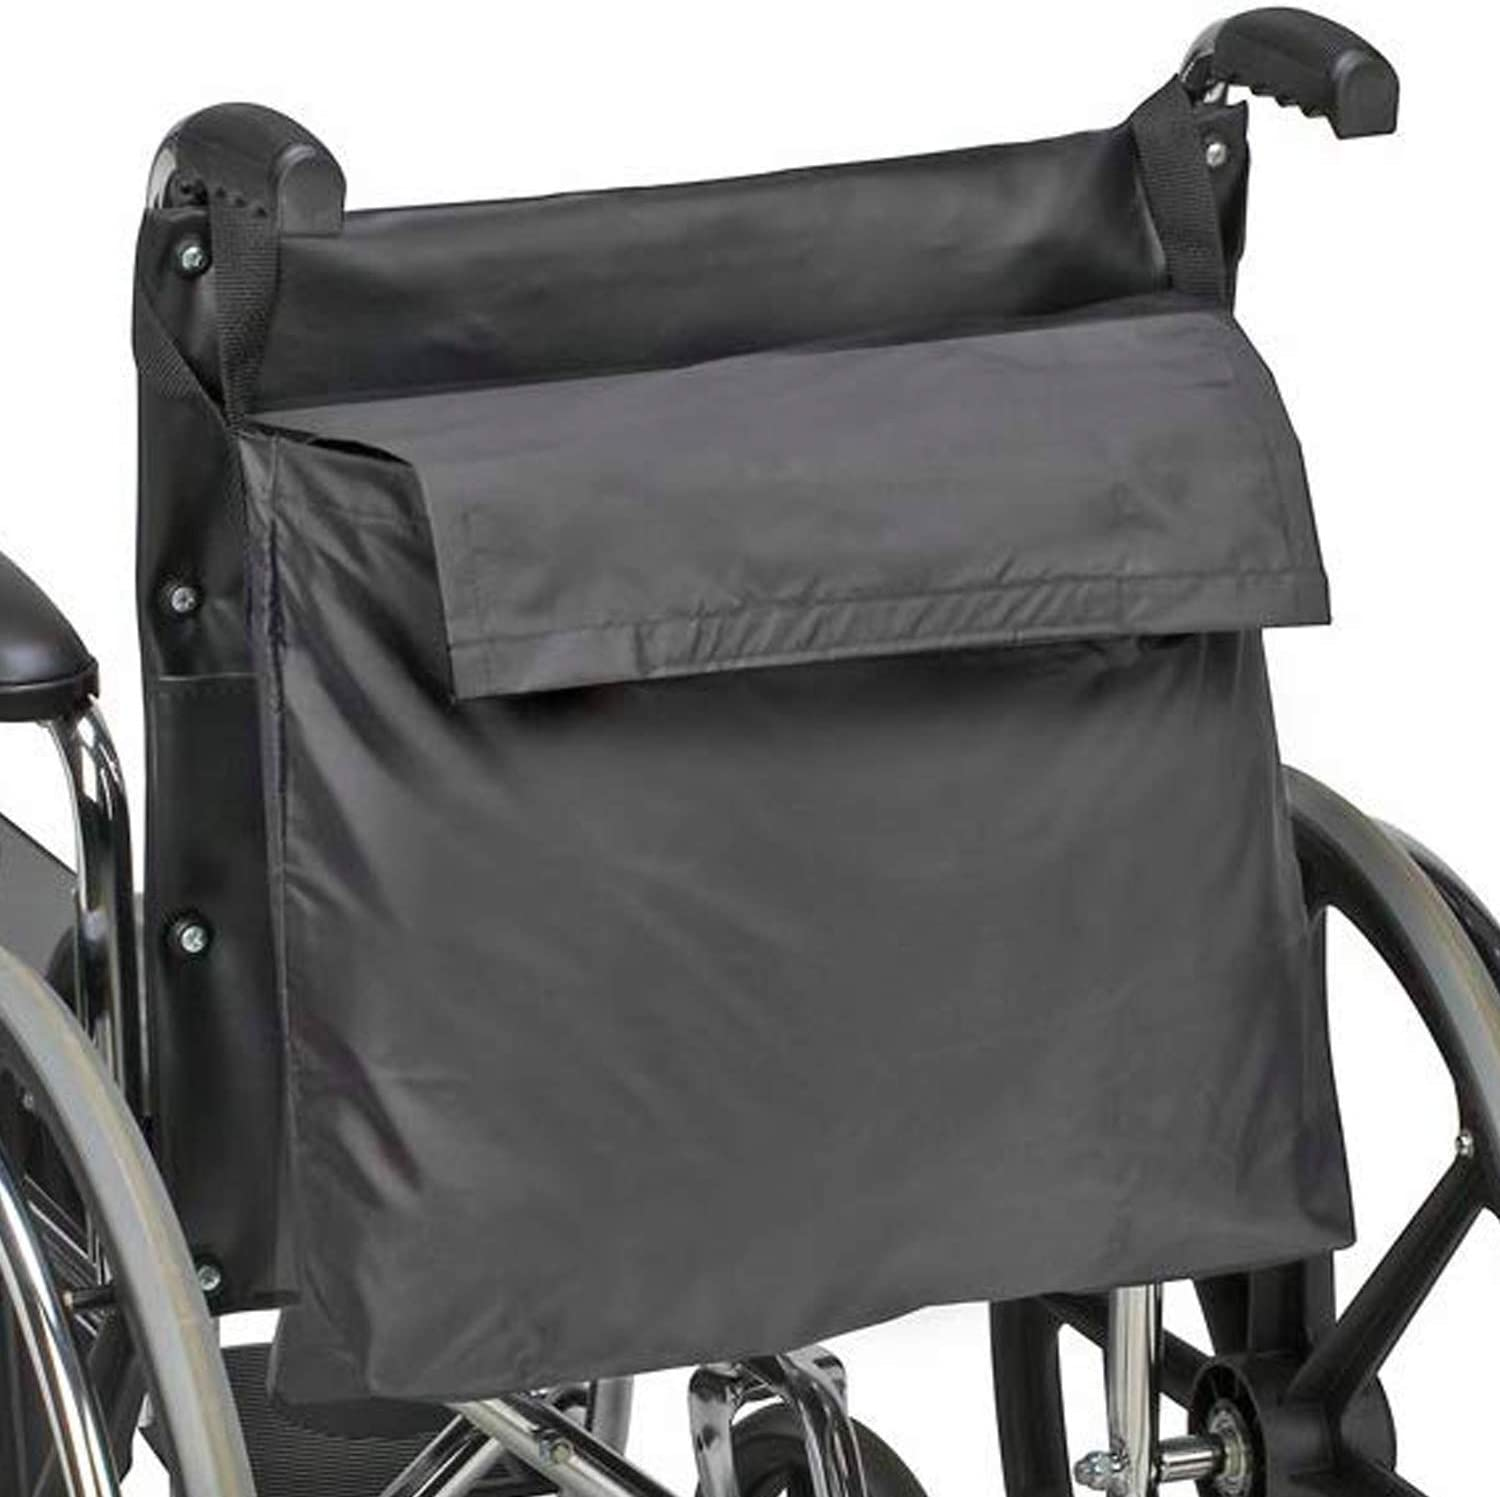 DMI Wheelchair Bag Provides Storage Area with Easy Access Pouch and Pockets, Flexible Straps Allow for Easy Install, Black 614bXzOEWGL